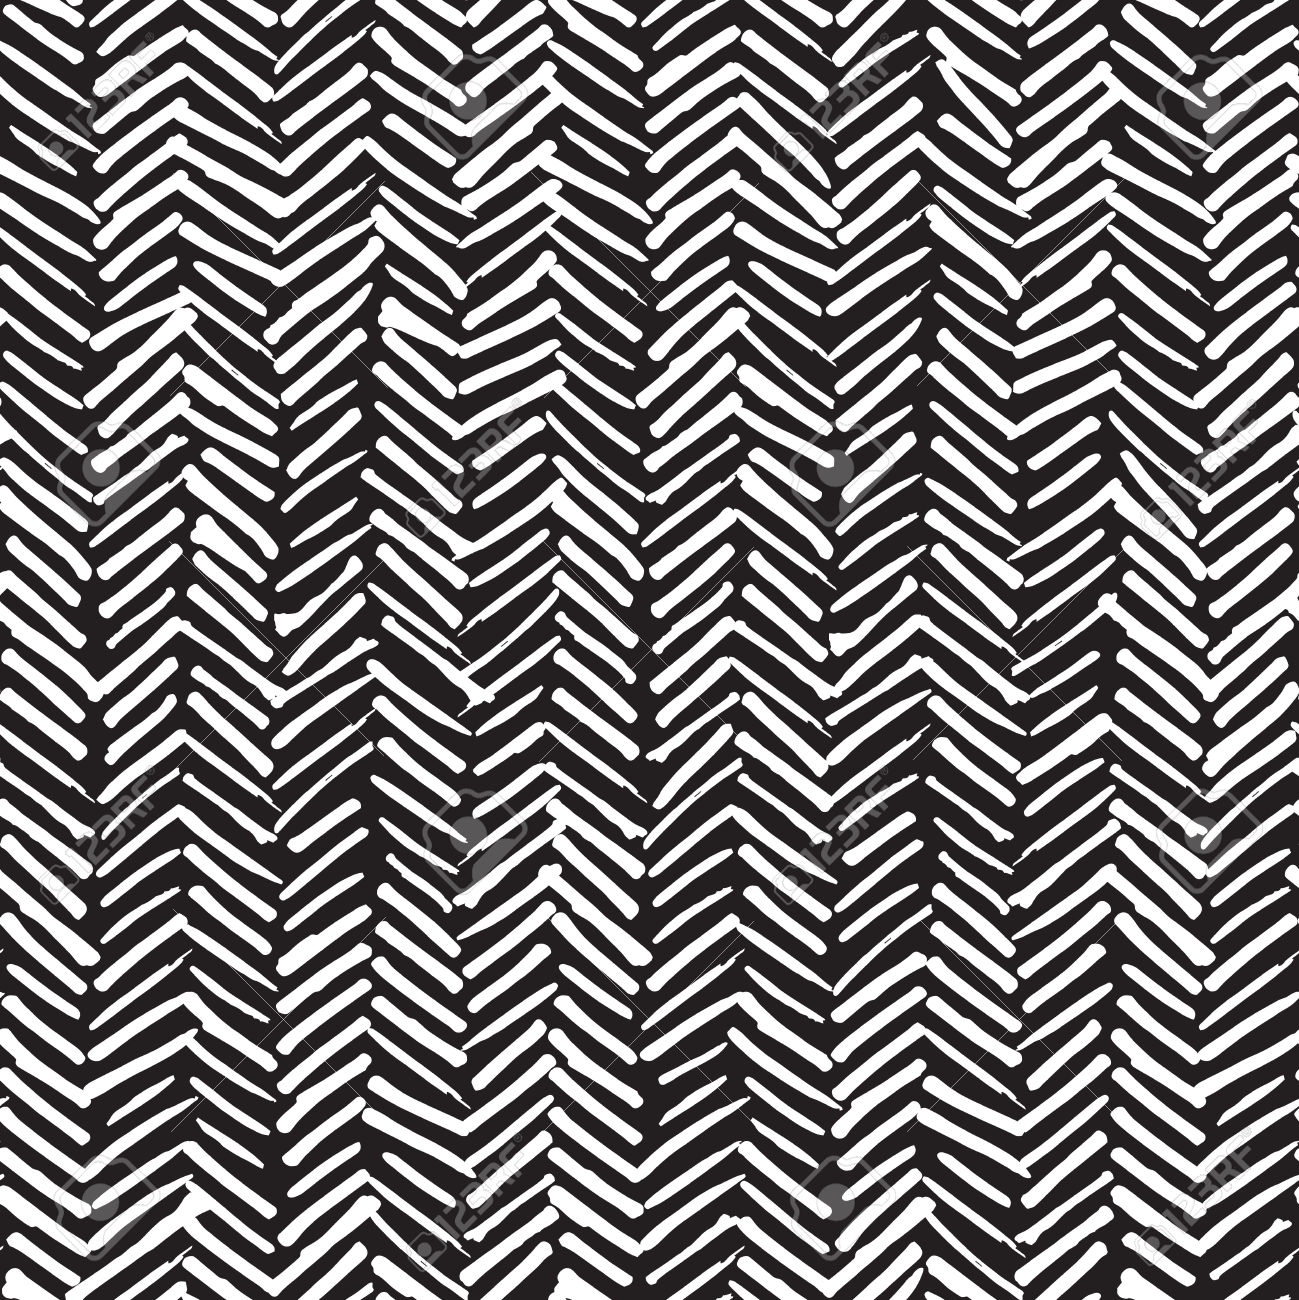 Grunge Chevron pattern